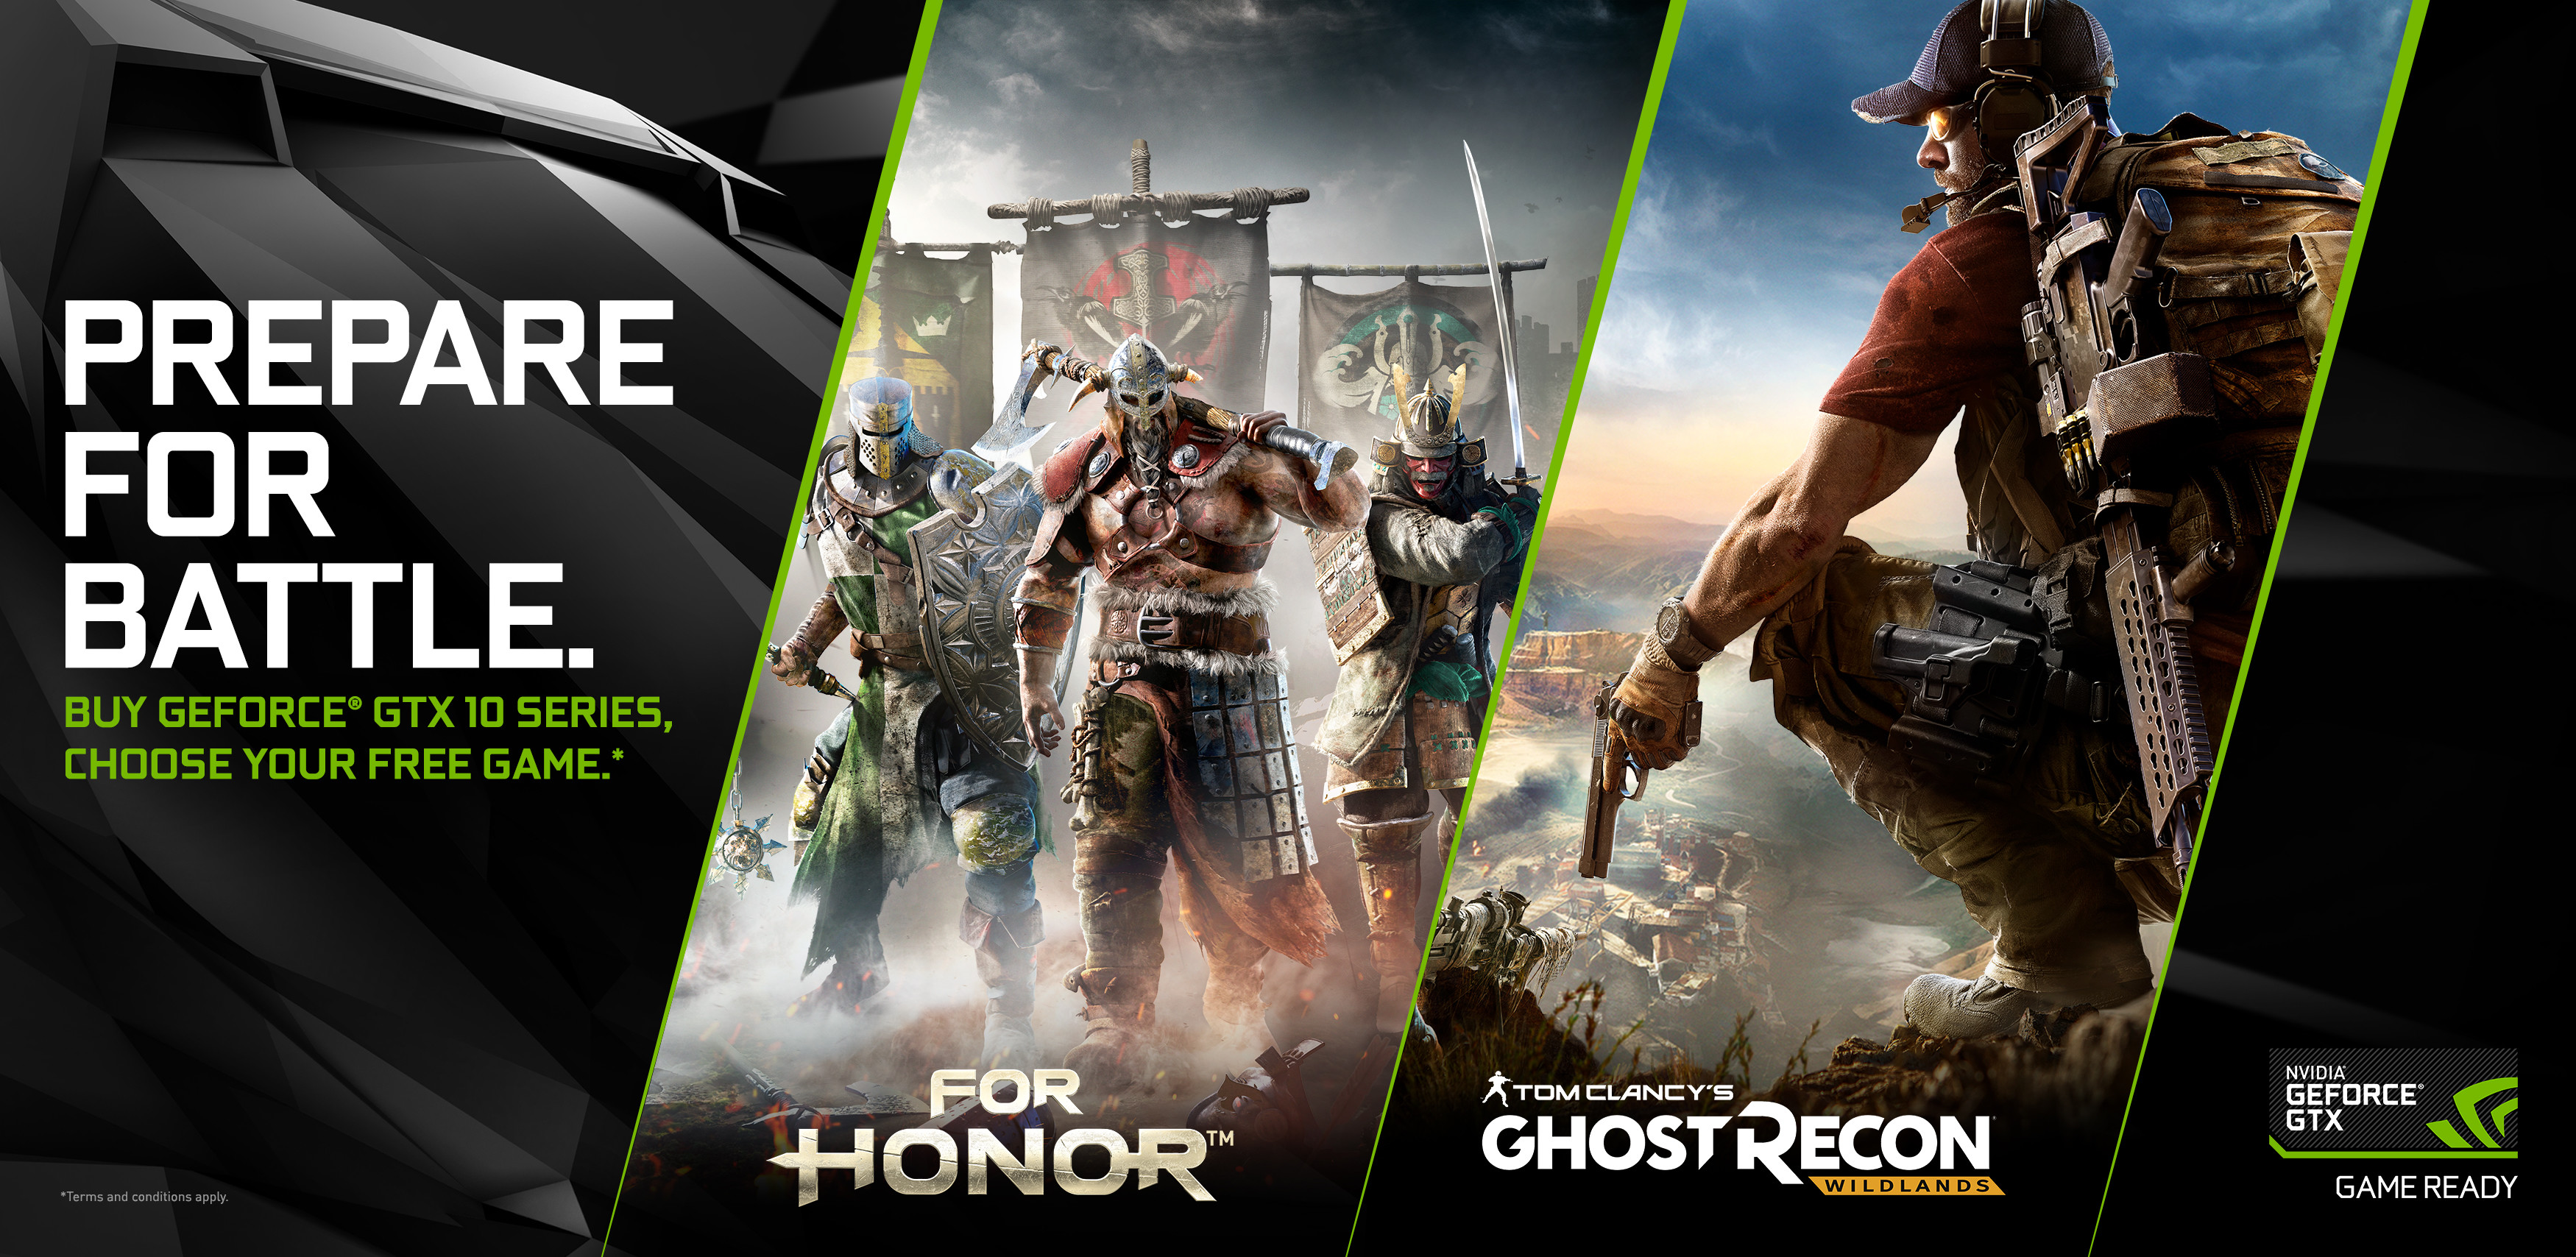 NVIDIA Announces New Game Bundle, Requires GeForce Experience to